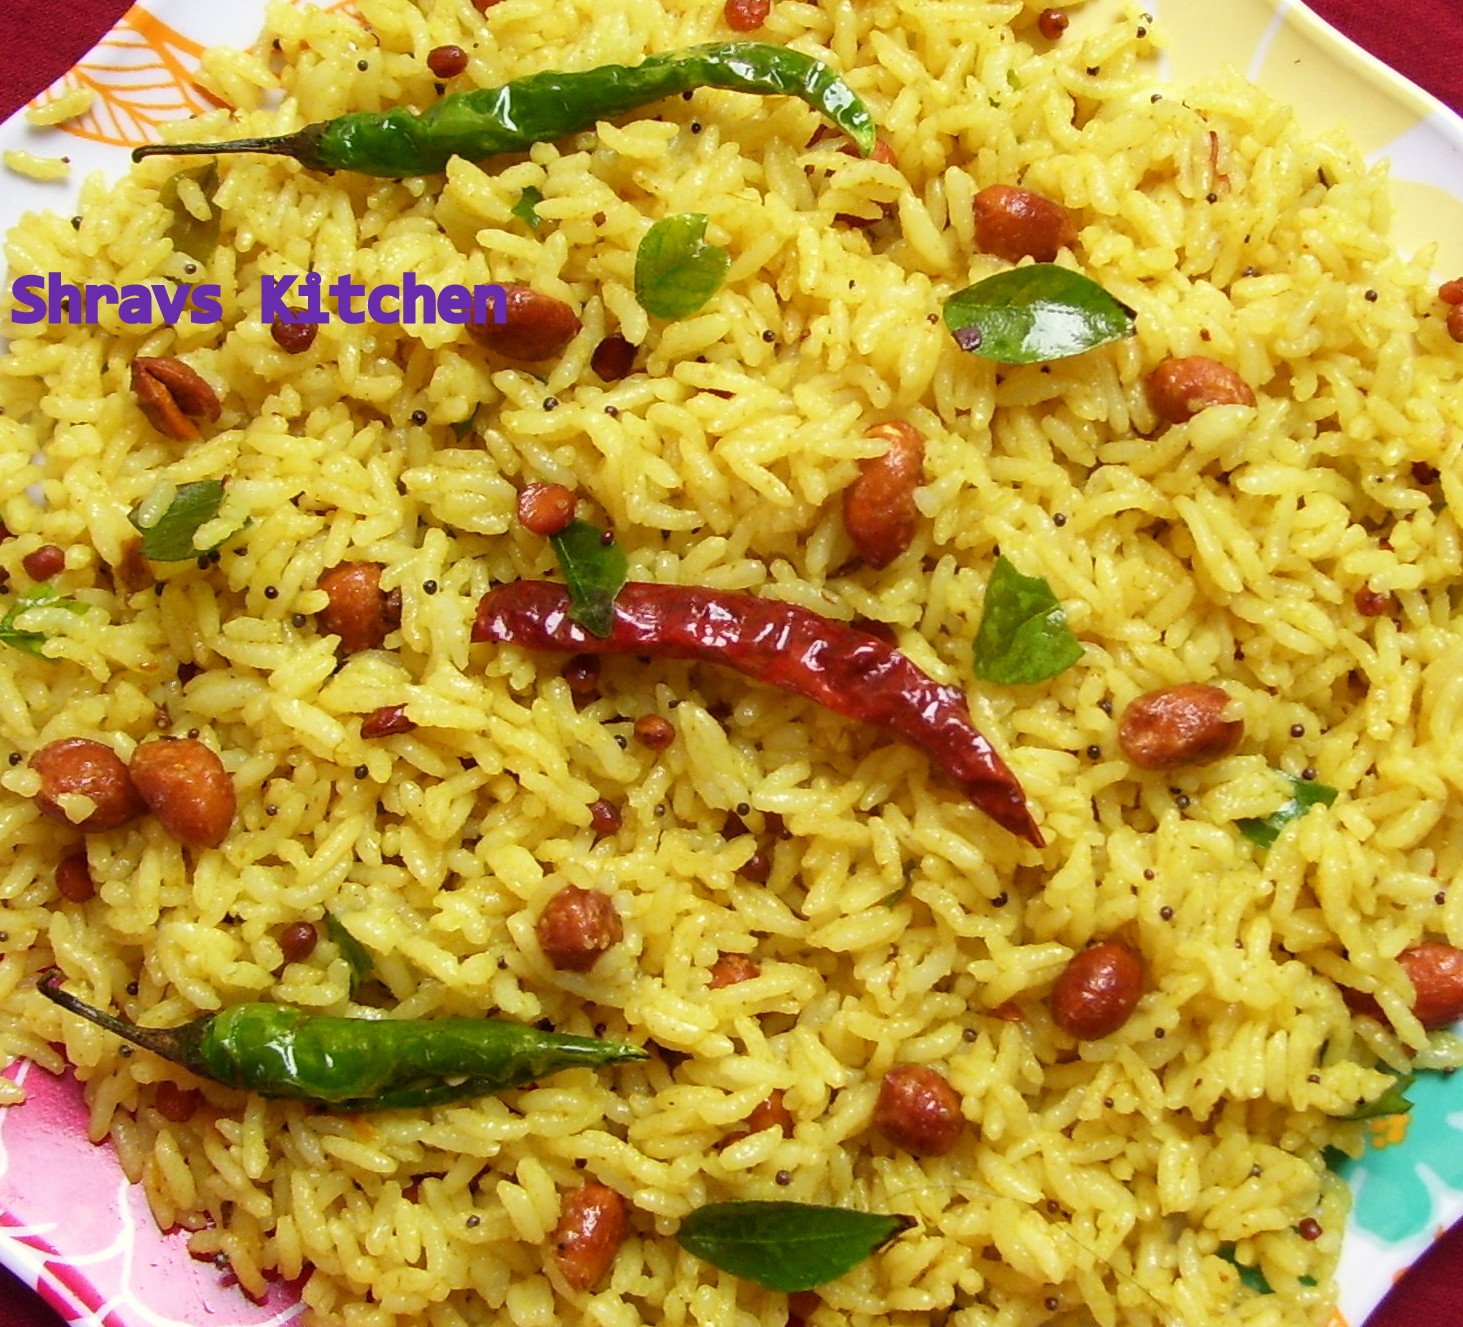 Shravs Kitchen: CHINTAPANDU PULIHORA/ TAMARIND RICE